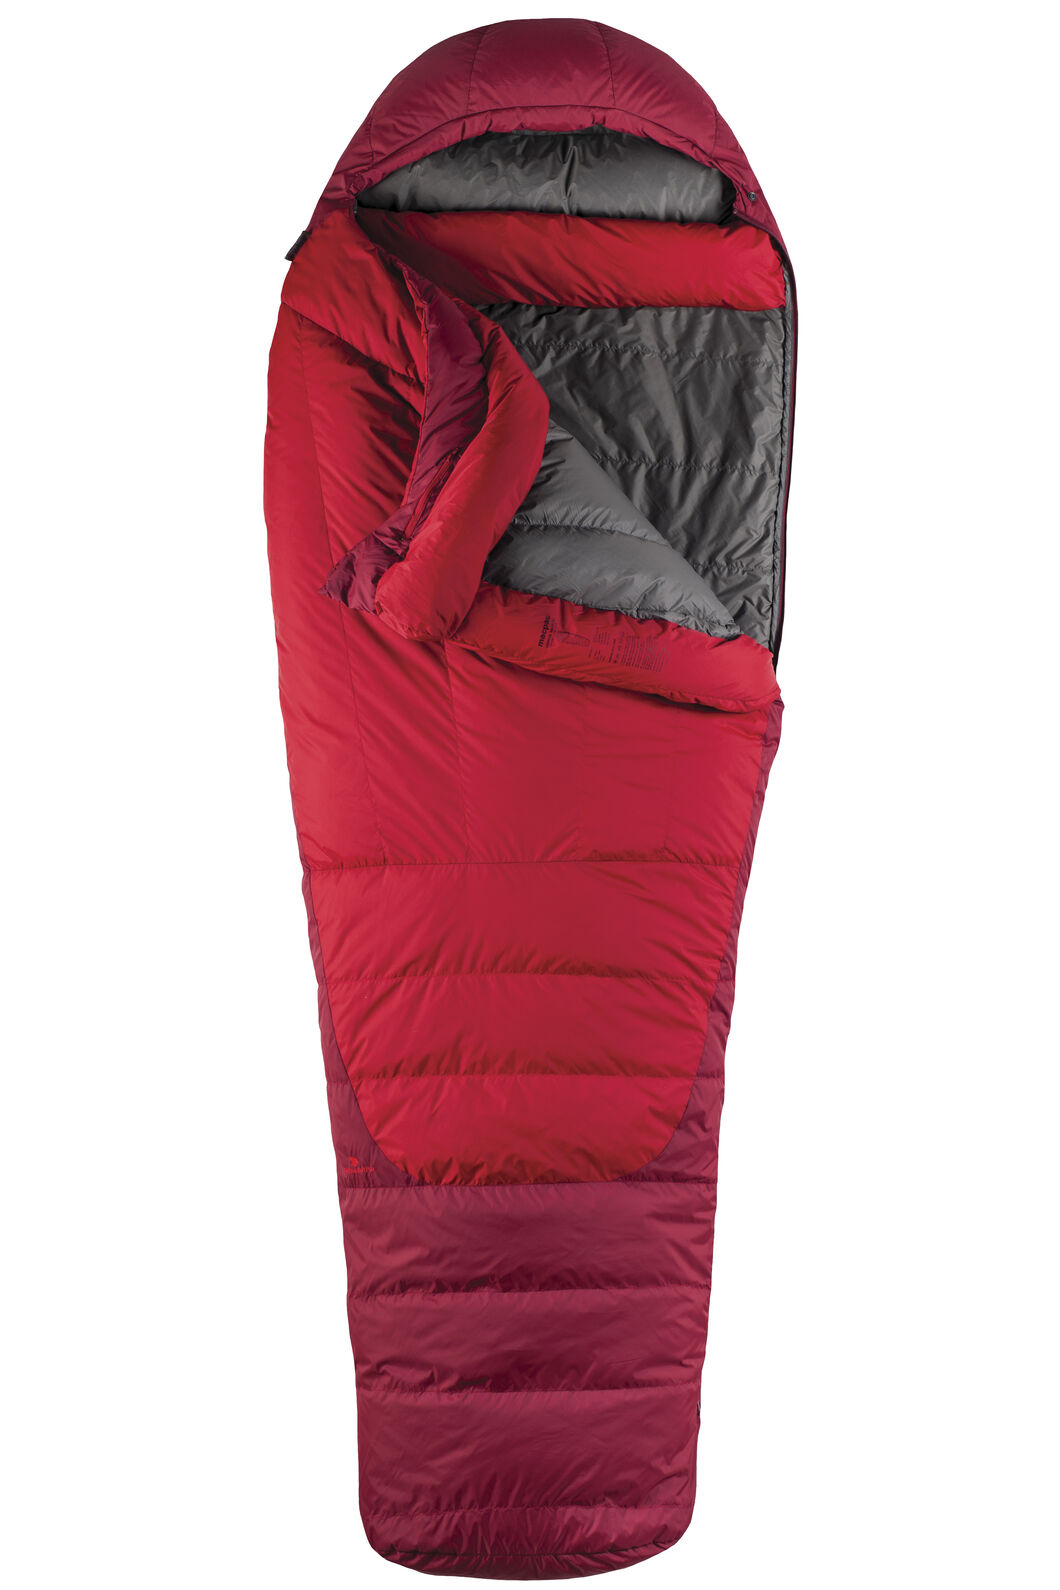 Macpac Latitude XP Goose Down 500 Sleeping Bag - Extra Large, Chilli, hi-res